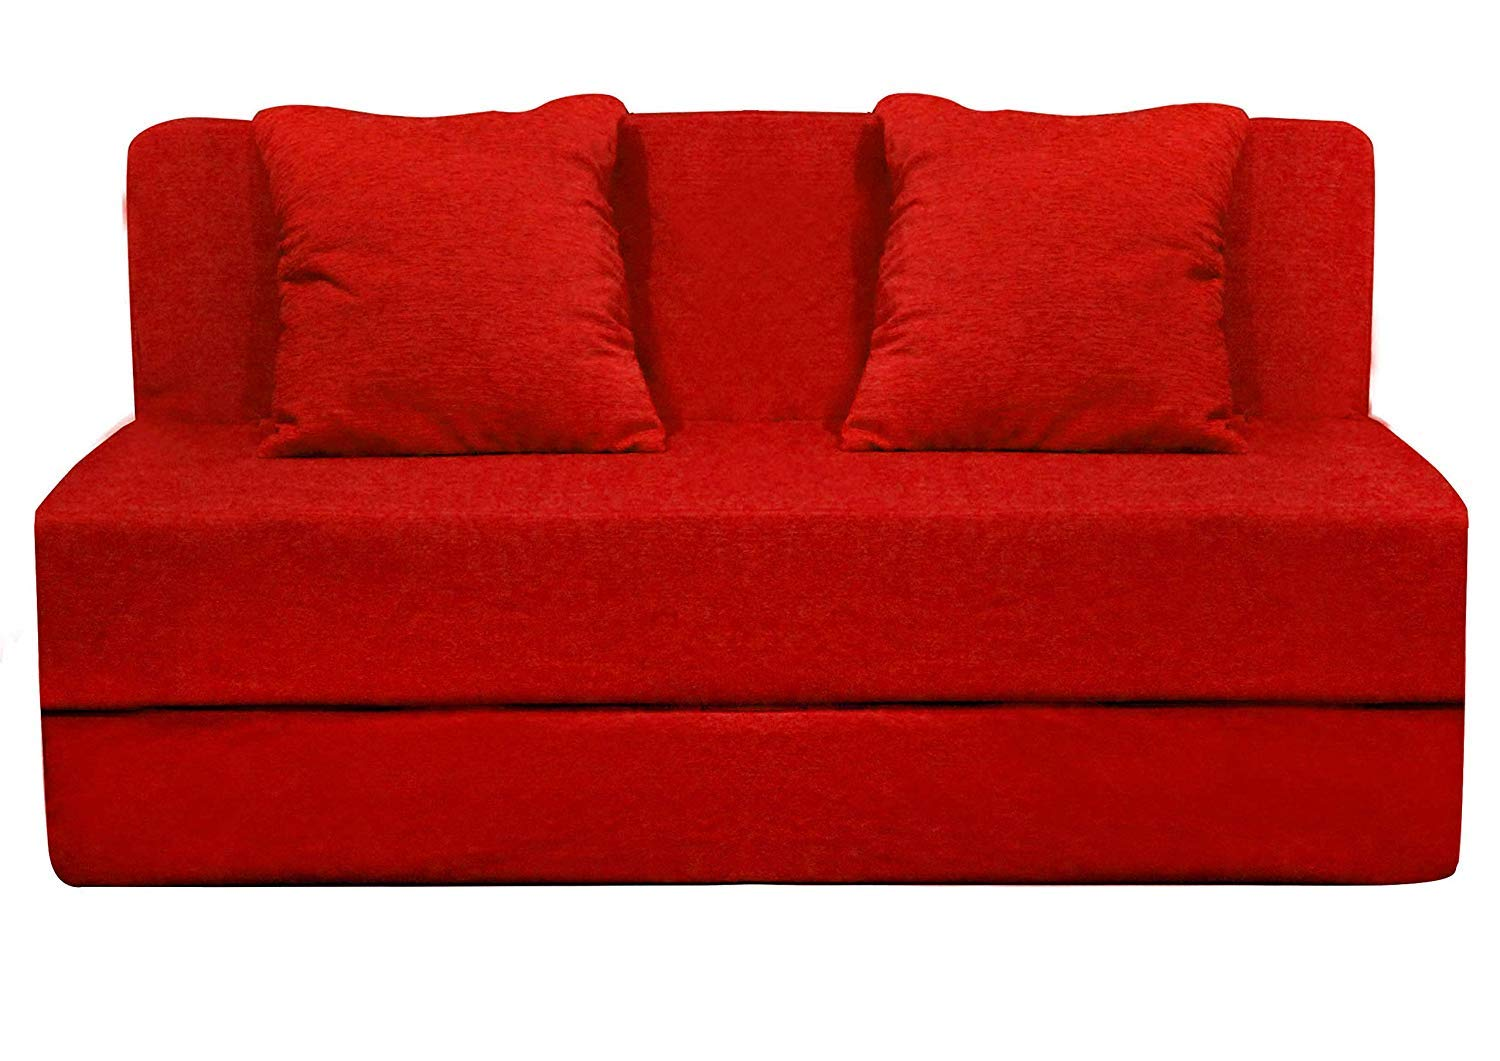 Aart Store High Density Foam 4X6 Feet Two Seater Sofa Cums